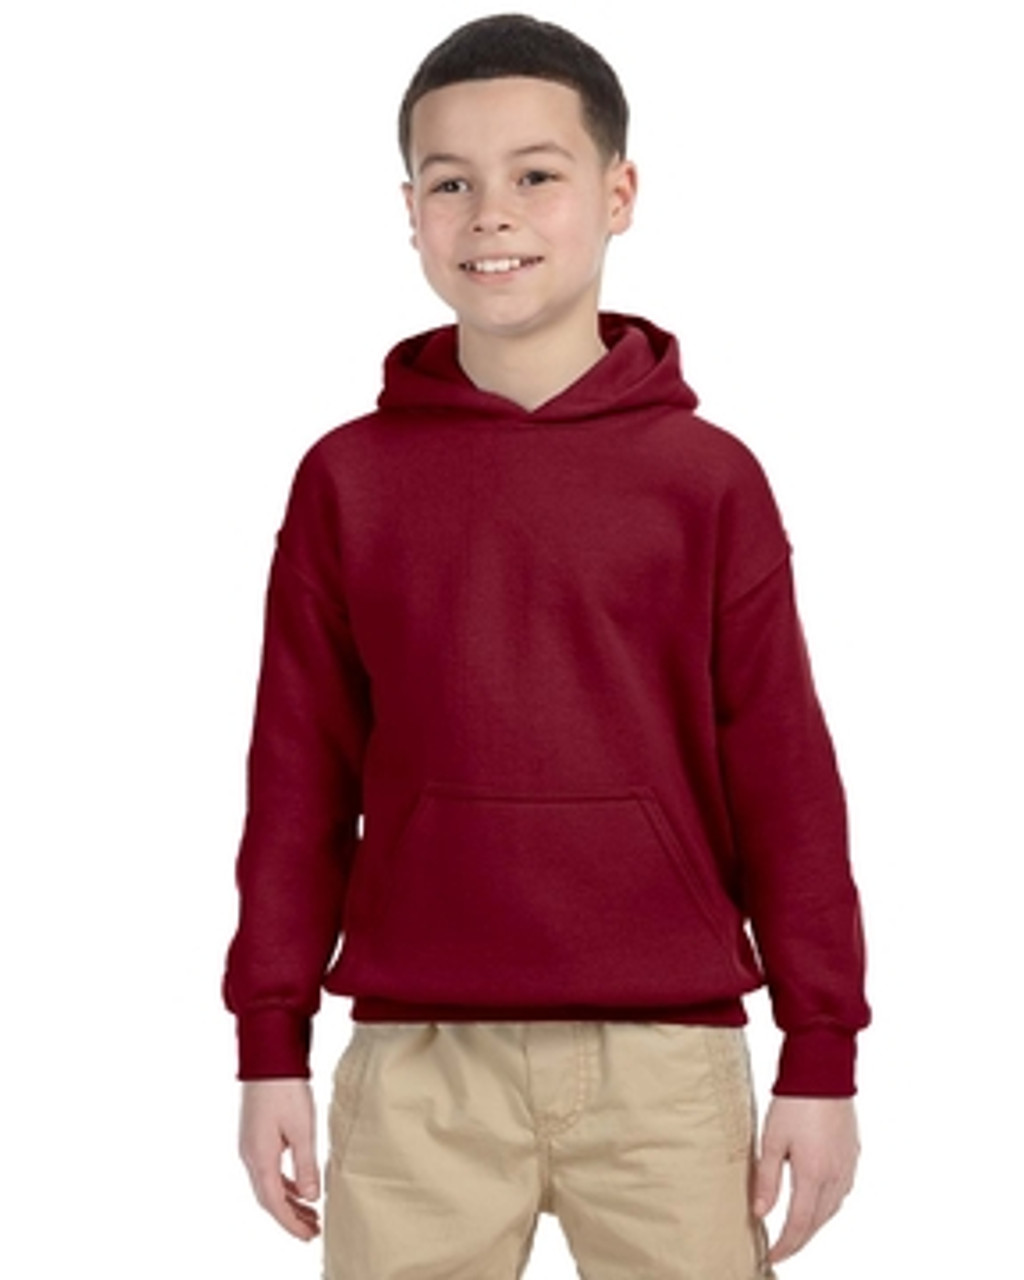 Maroon - G185B Gildan Heavy Blend Youth 50/50 Hoodie | Blankclothing.ca